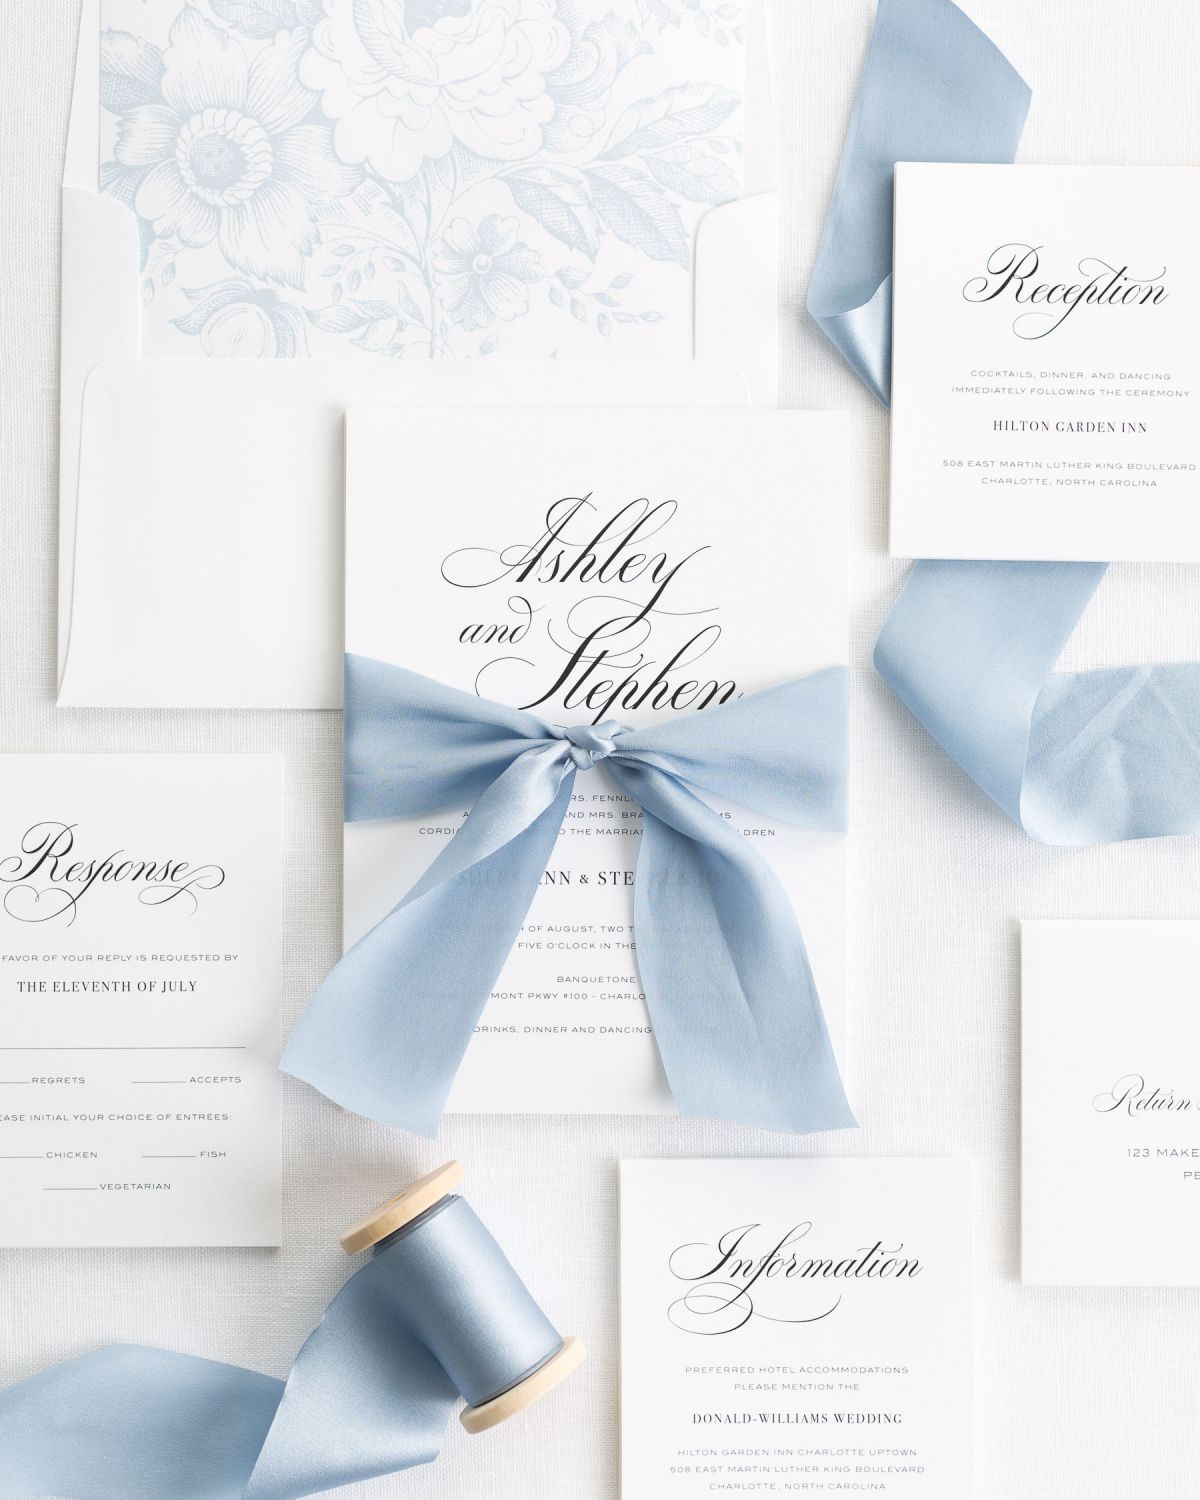 Wedding Invitations With Ribbons: Timeless Calligraphy Ribbon Wedding Invitations